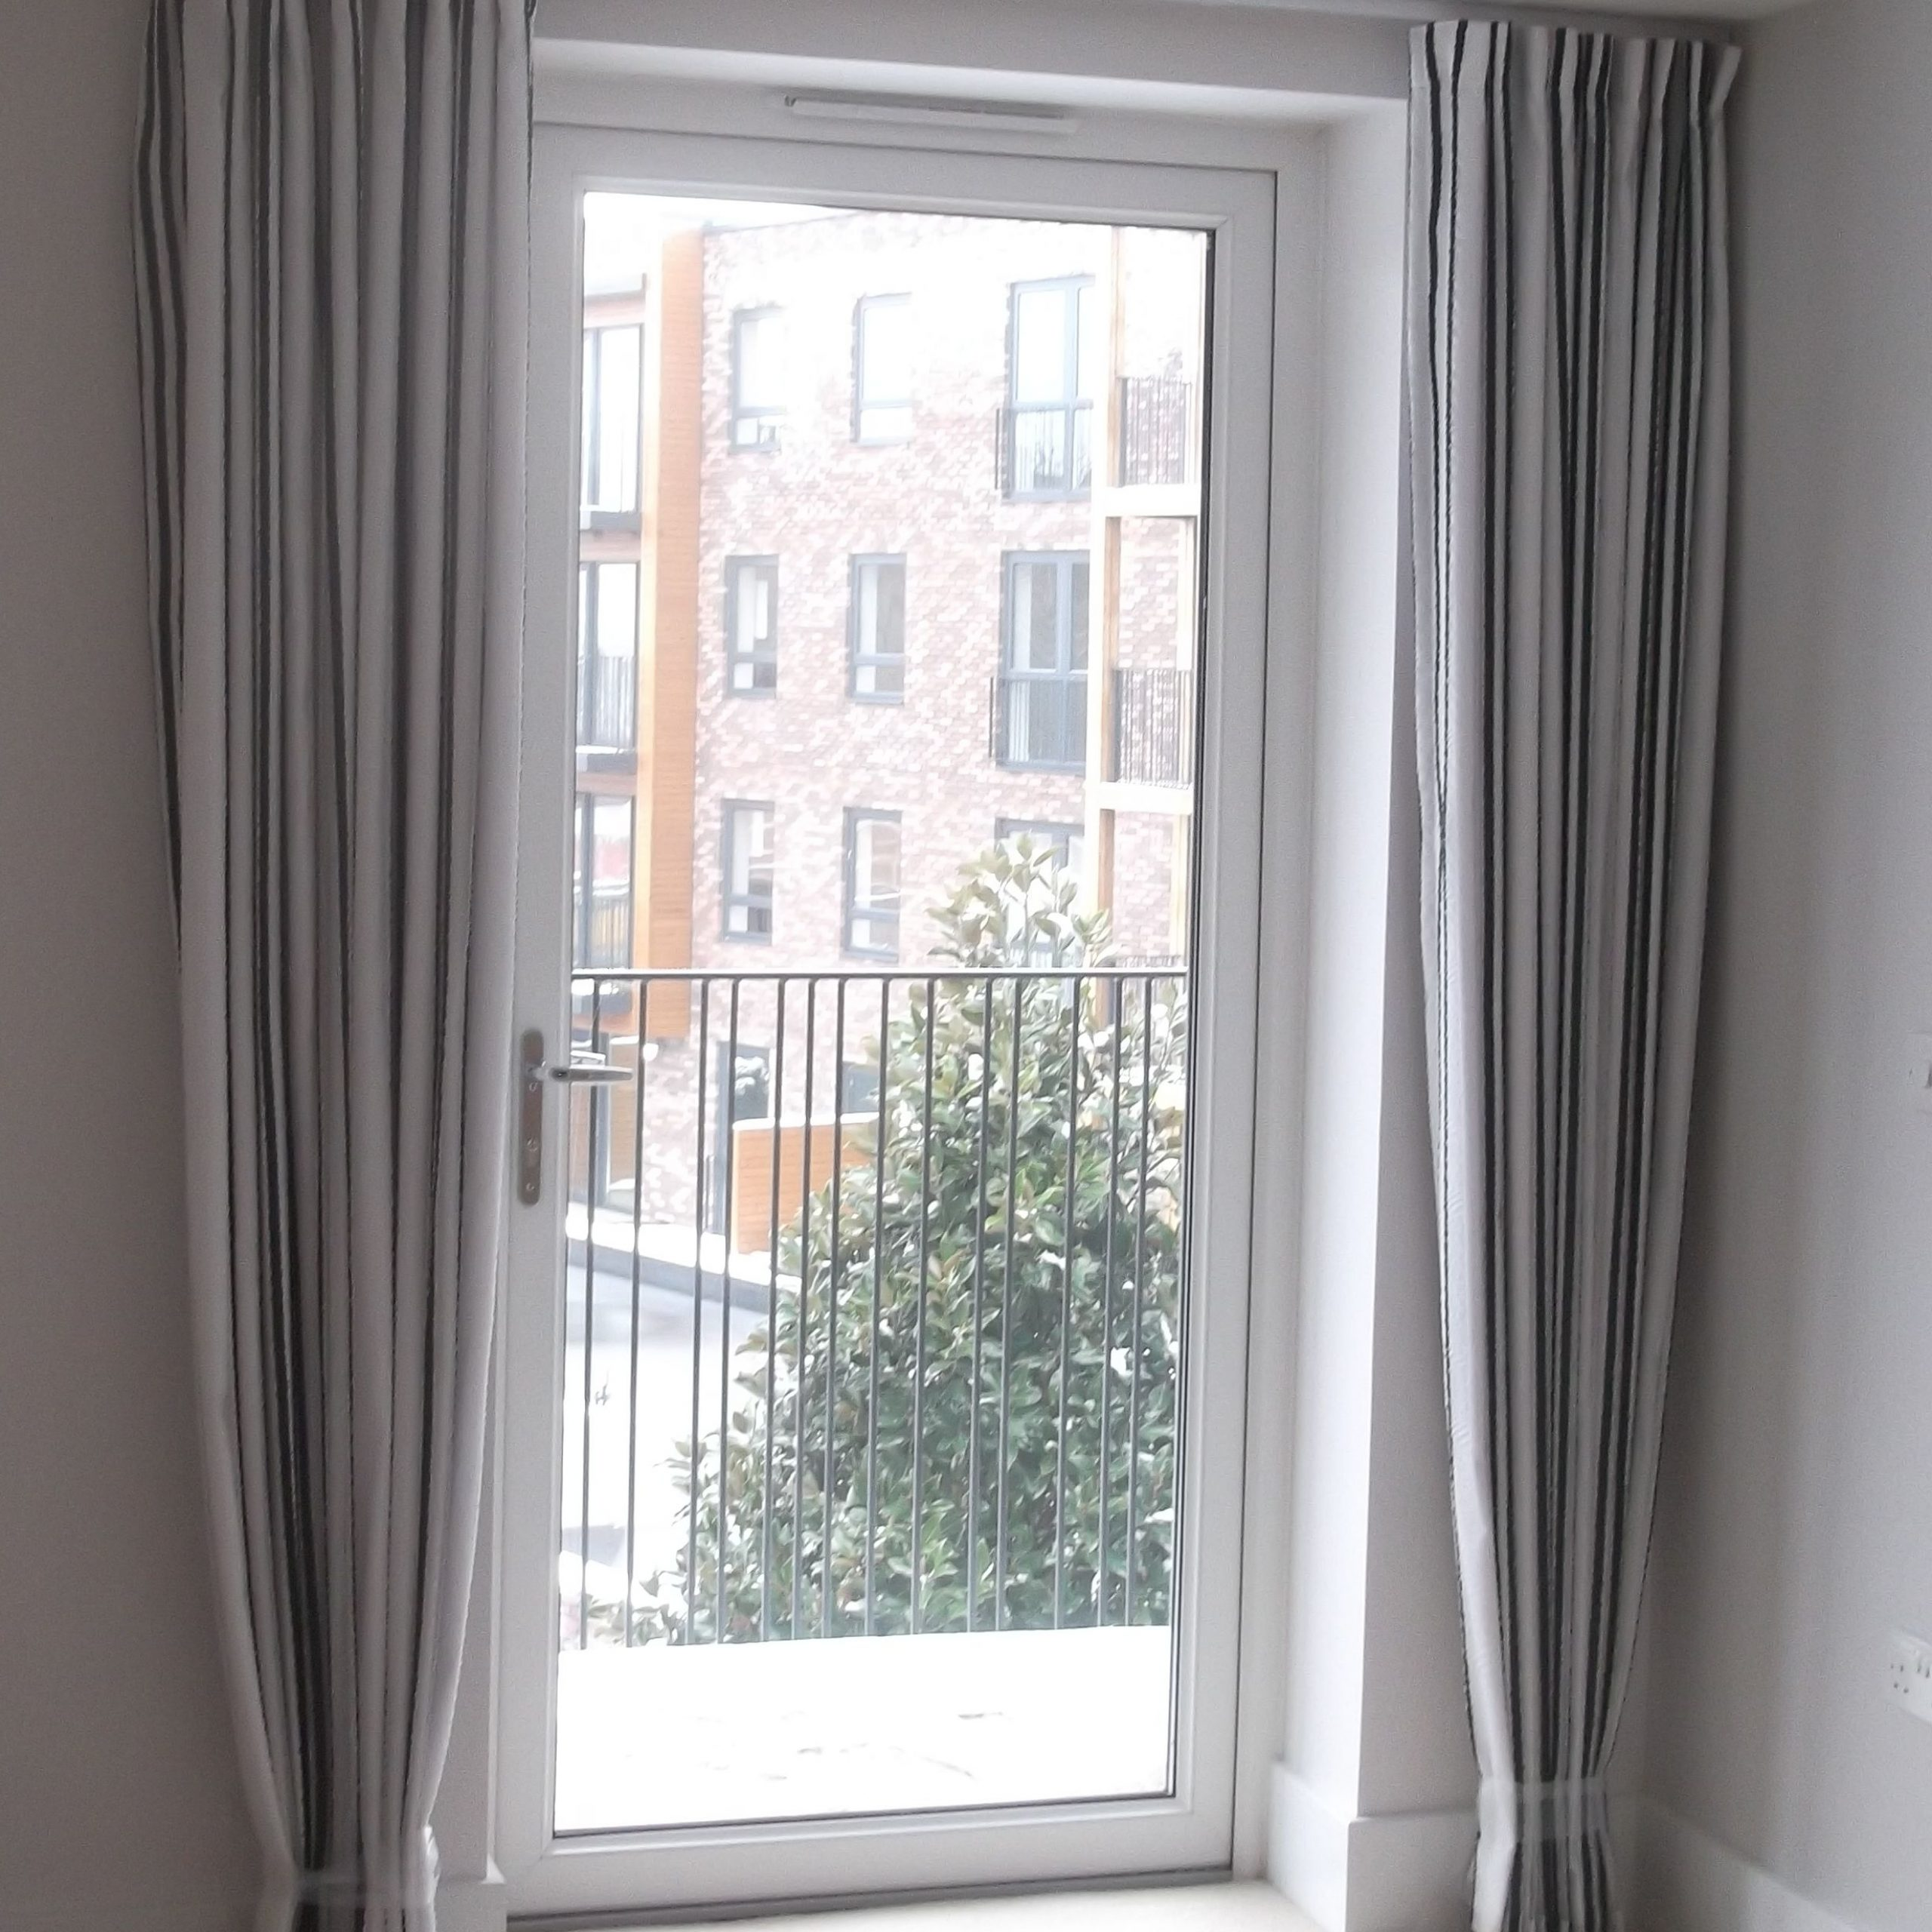 Rustic Curtains, Floor To Pertaining To La Vida Window Curtains (View 17 of 20)